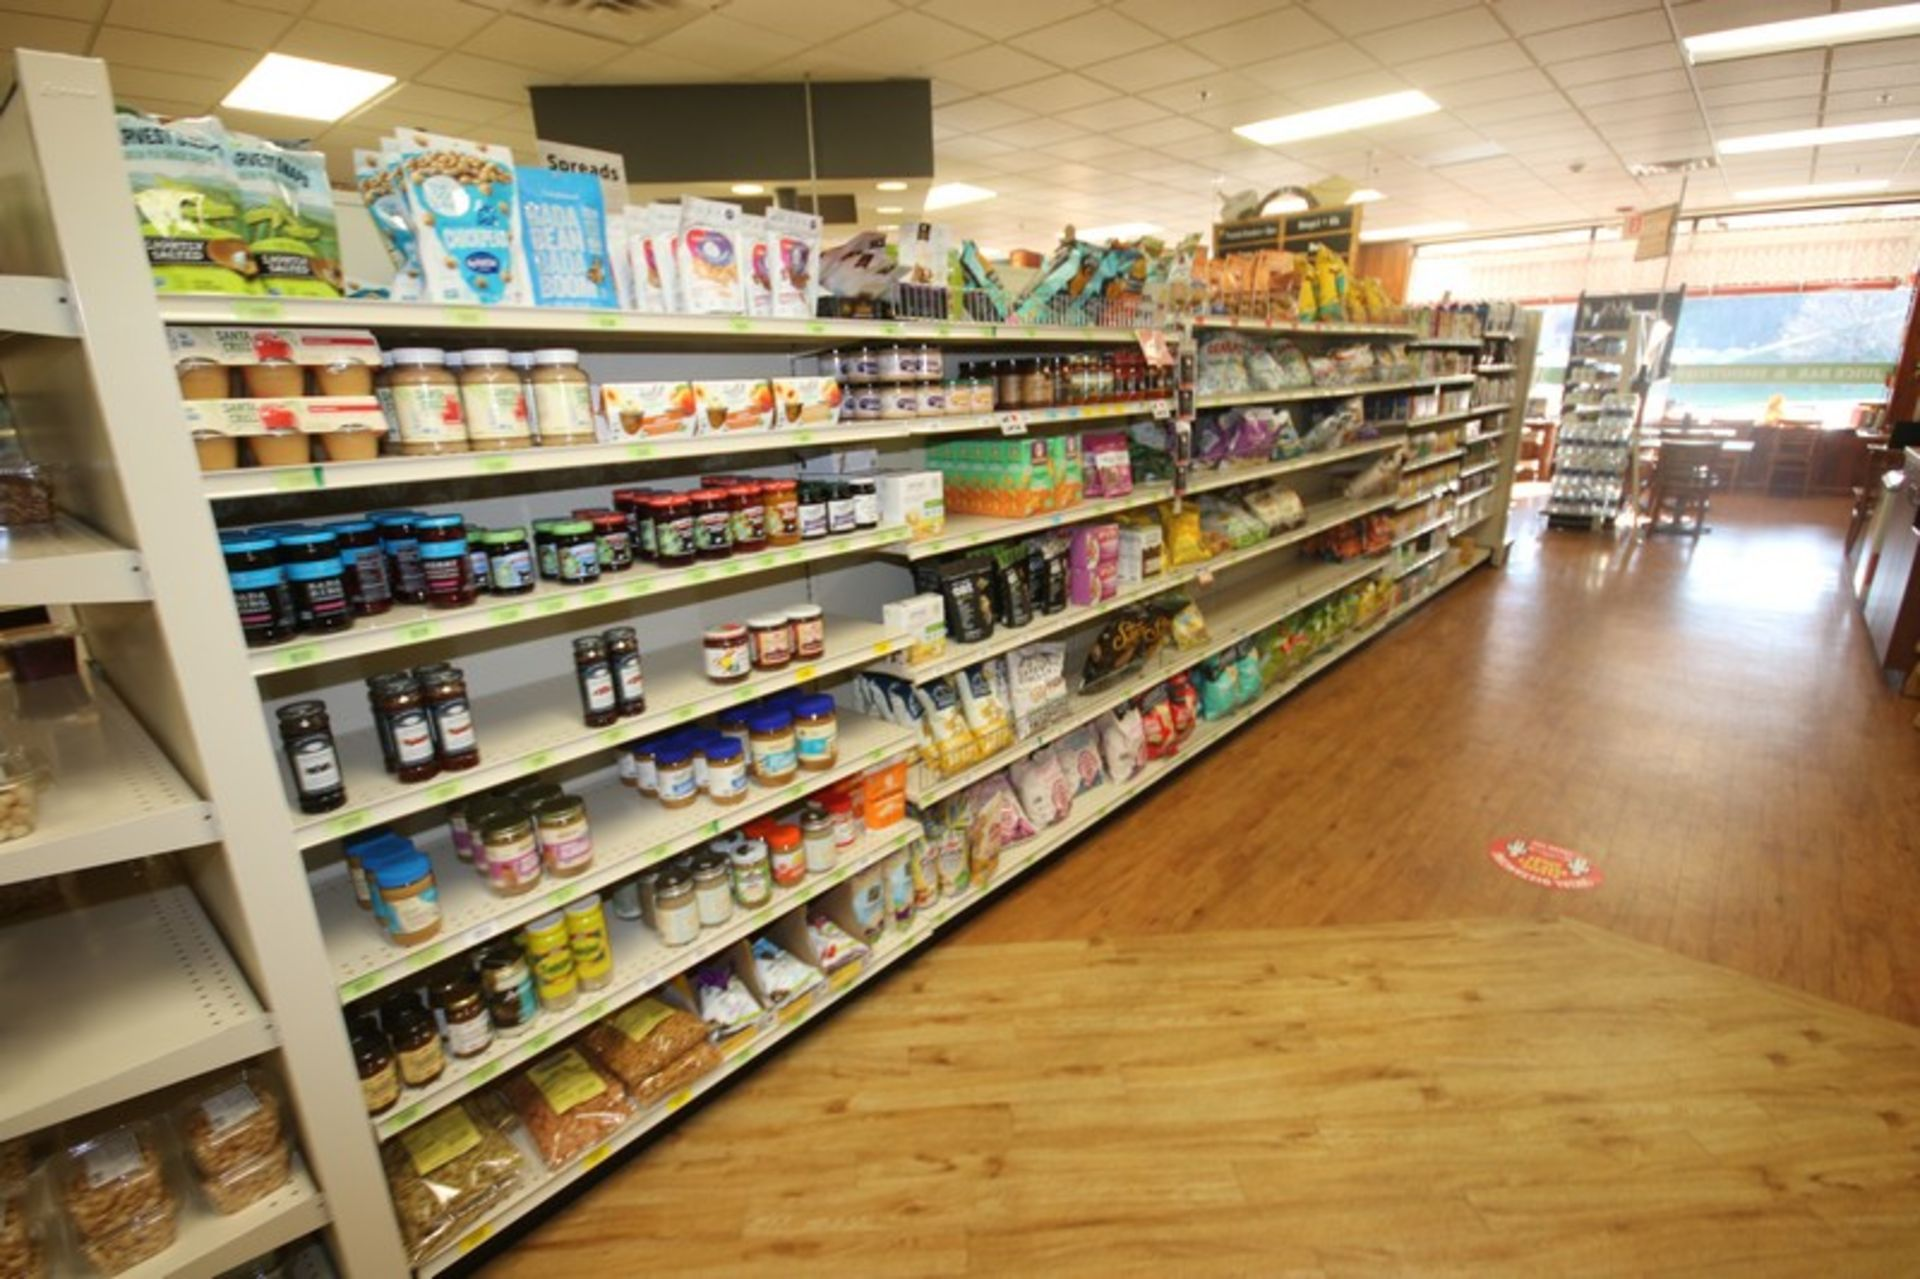 Feet of Double Sided Super Market Shelving, with Shelves (NOTE: SOLD BY THE FOOT) (Located in - Image 4 of 4